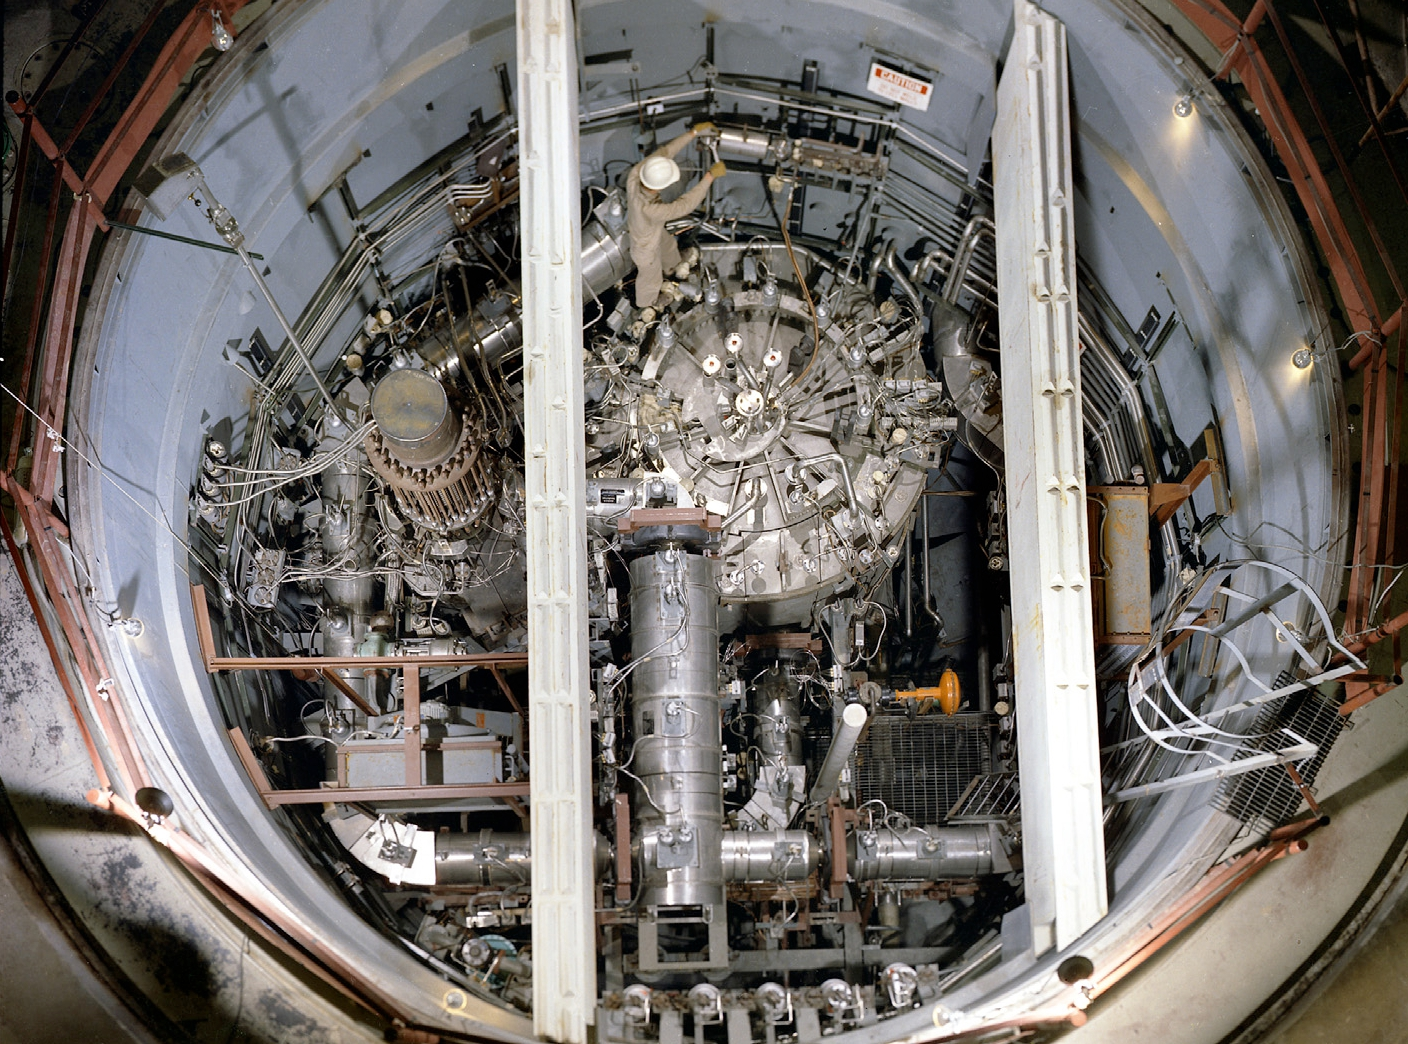 The original molten salt reactor from the Oak Ridge National Lab in the late 1960s, image courtesy of Transatomic.